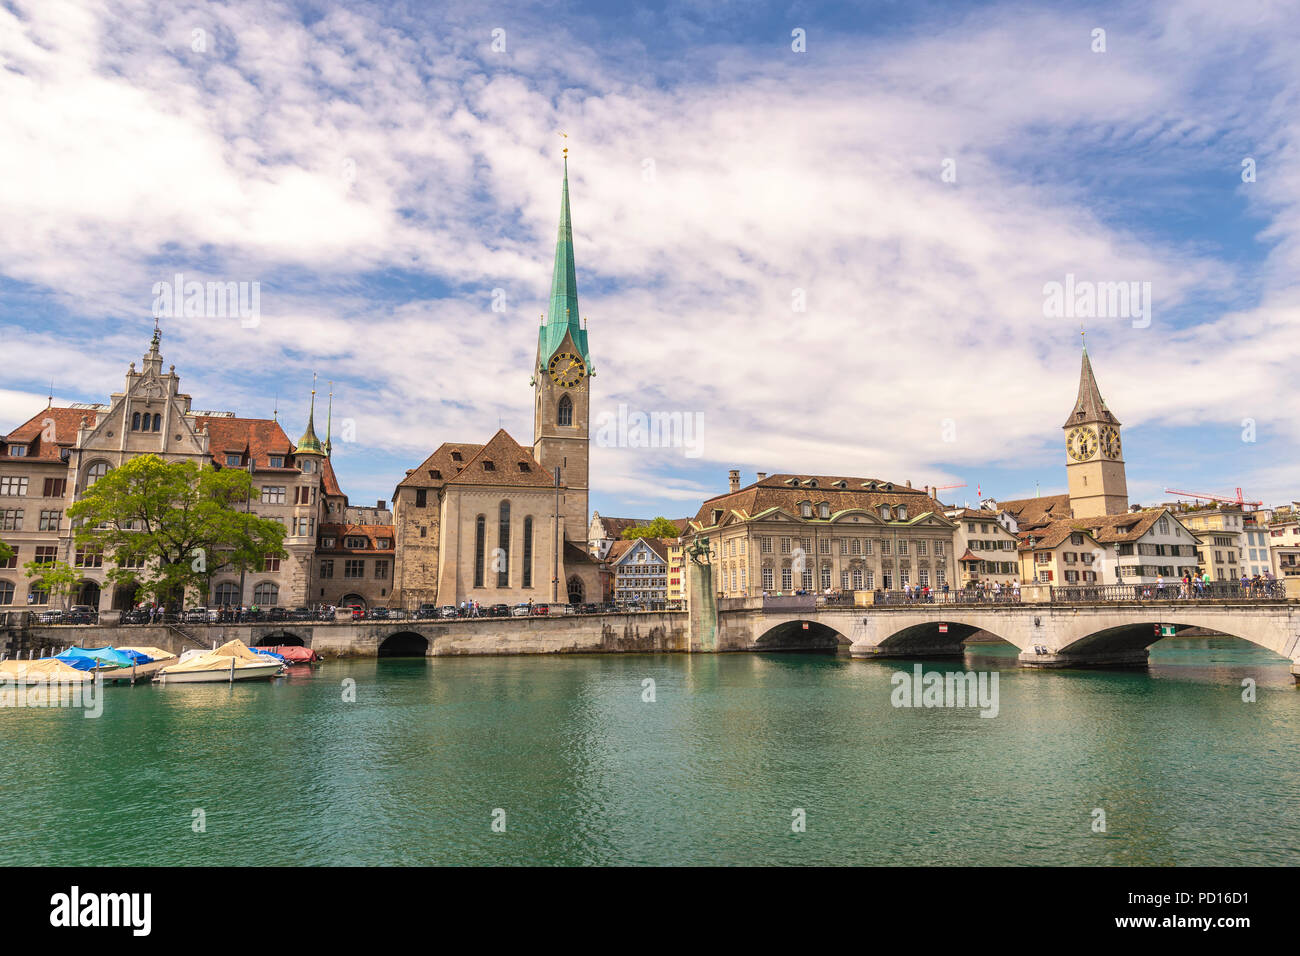 Zurich city skyline at Limmat River with Fraumunster Church, Zurich Switzerland - Stock Image